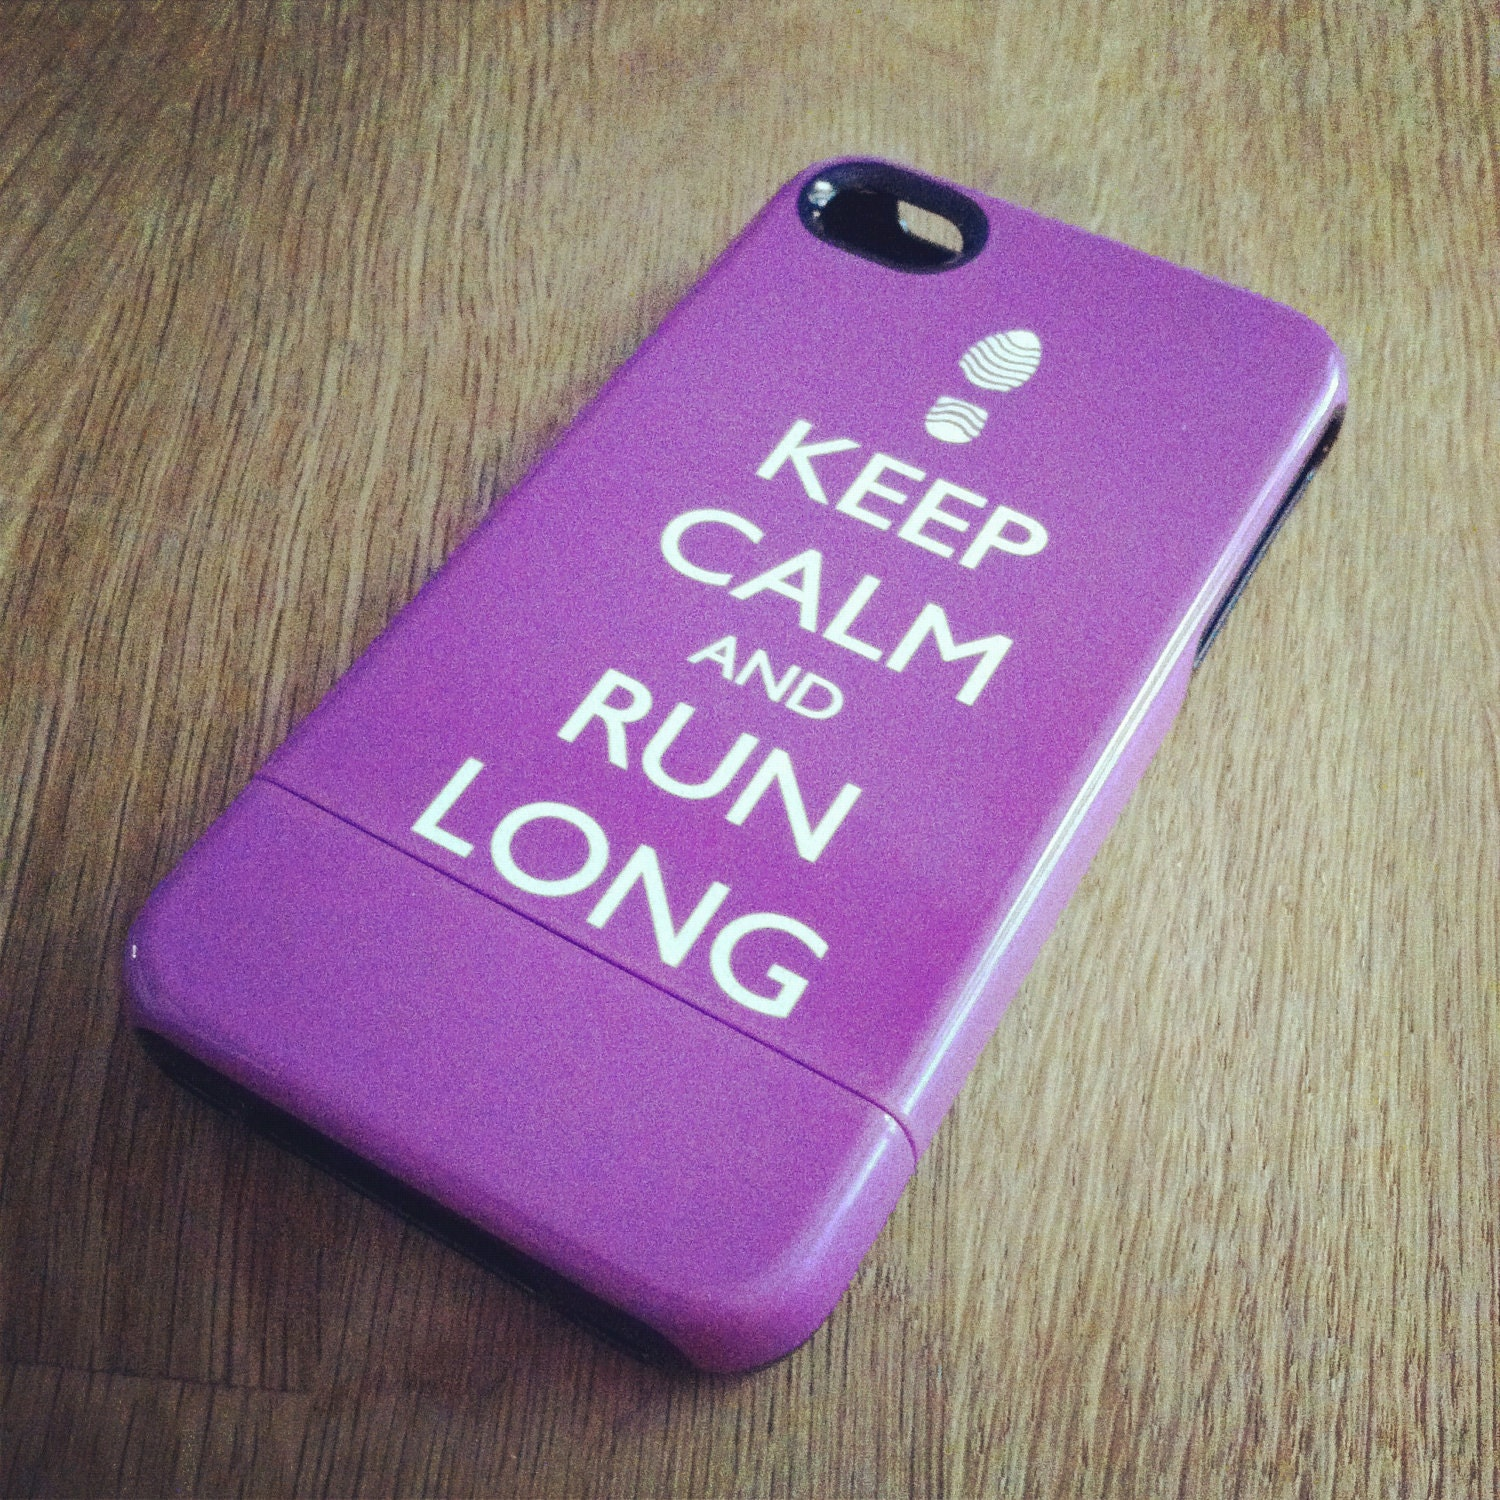 Keep Calm and Run Long iPhone Tough Case 4 / 4S or 3G - Personalized iPhone Case - original design by a drop of golden sun